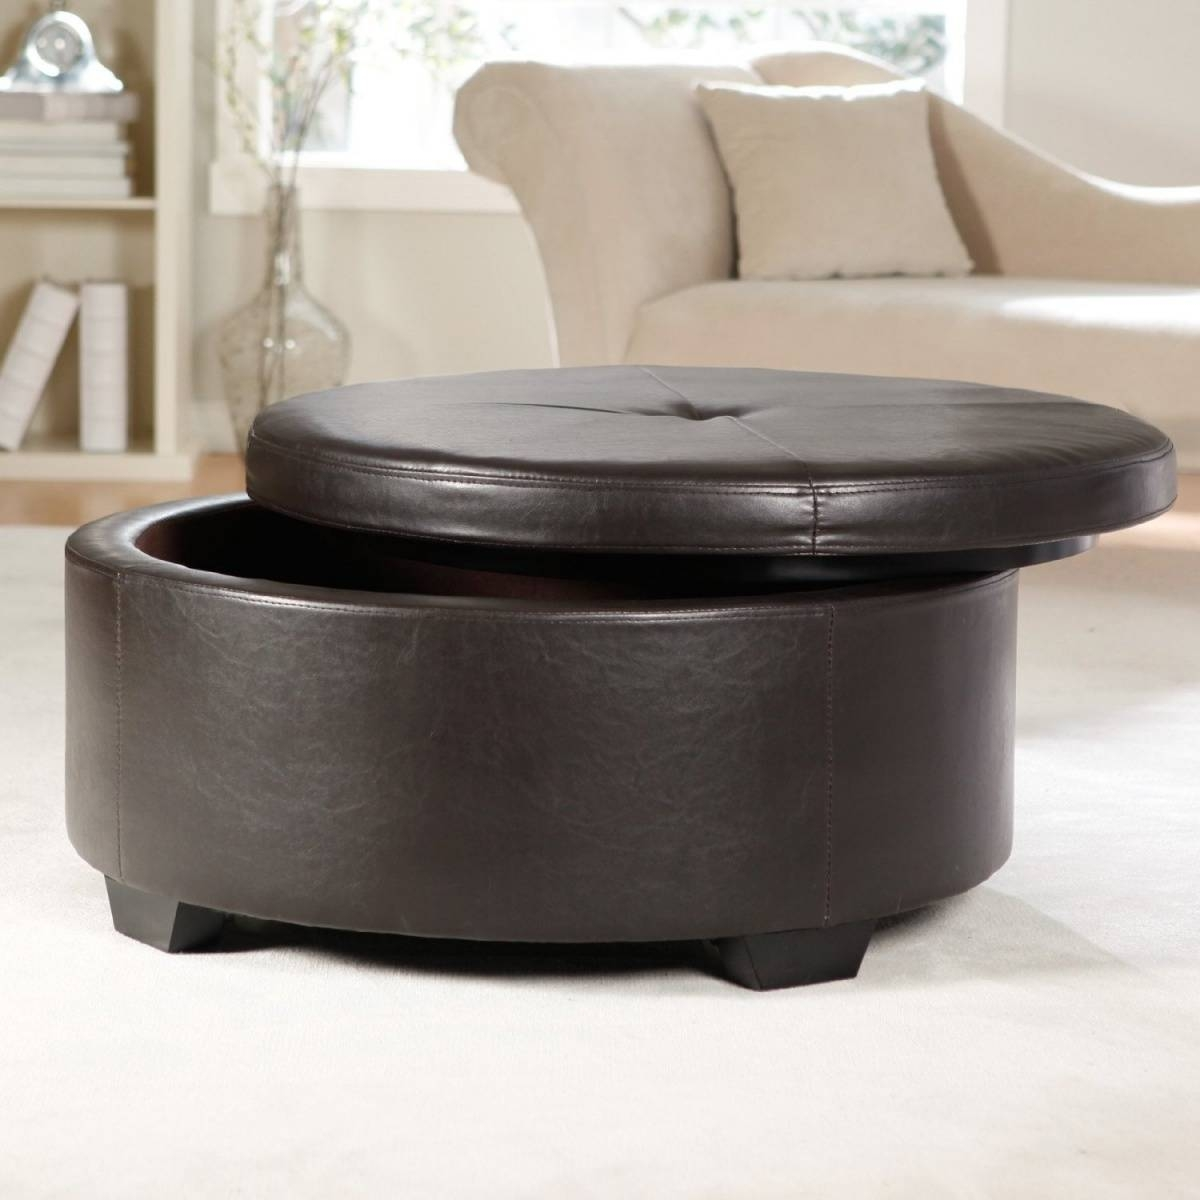 Round Coffee Table With 4 Storage Ottomans | Coffee Tables Decoration with regard to Round Storage Coffee Tables (Image 22 of 30)